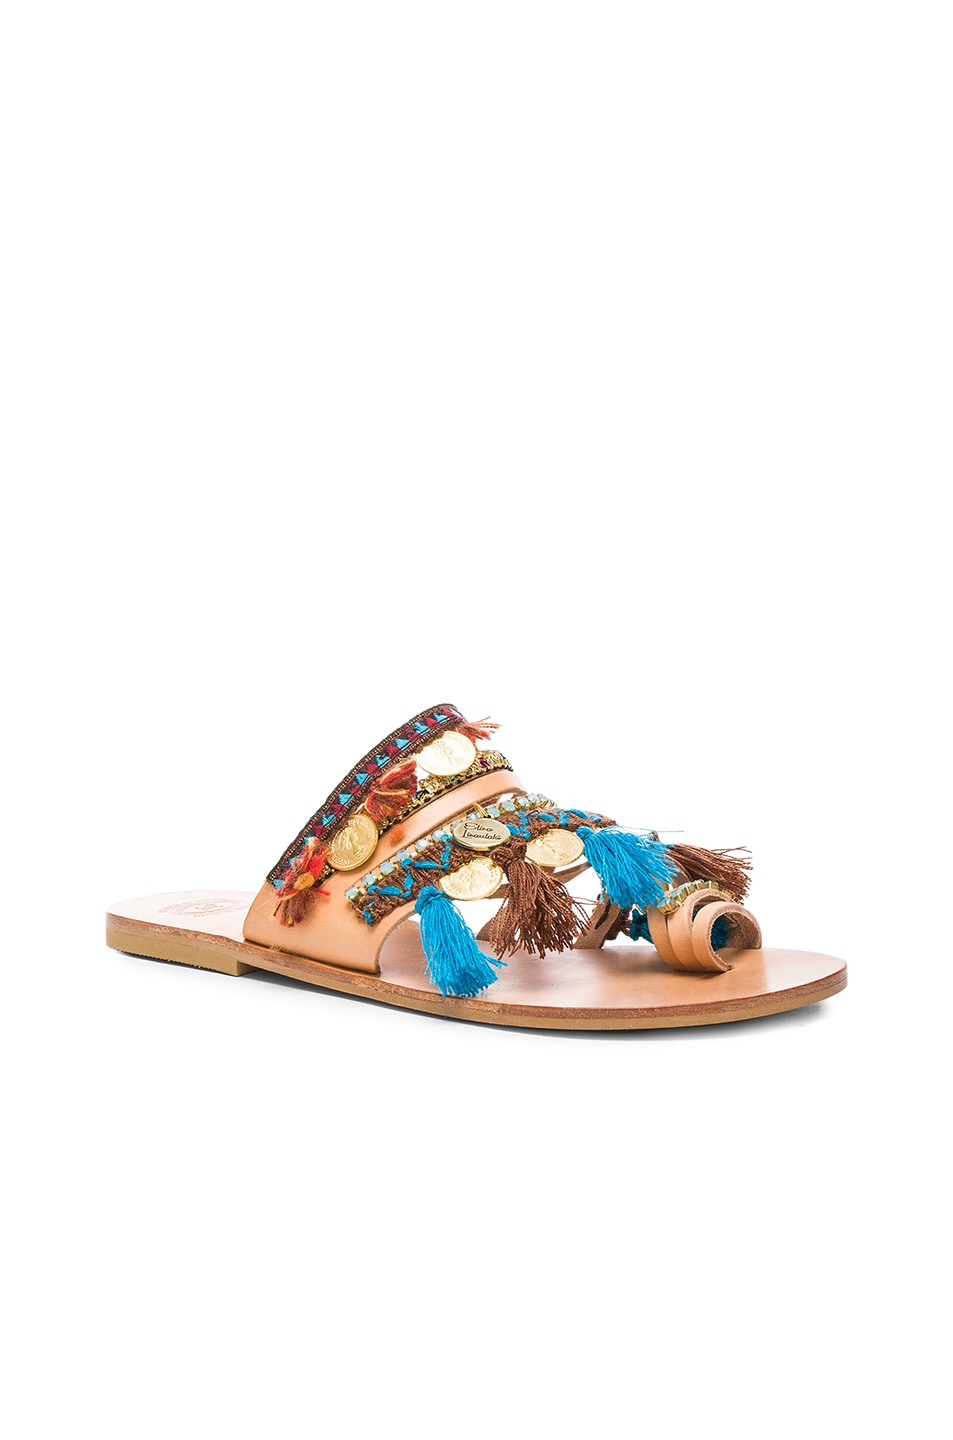 Image 3 of Elina Linardaki Leather Marrakech Sandals in Multi